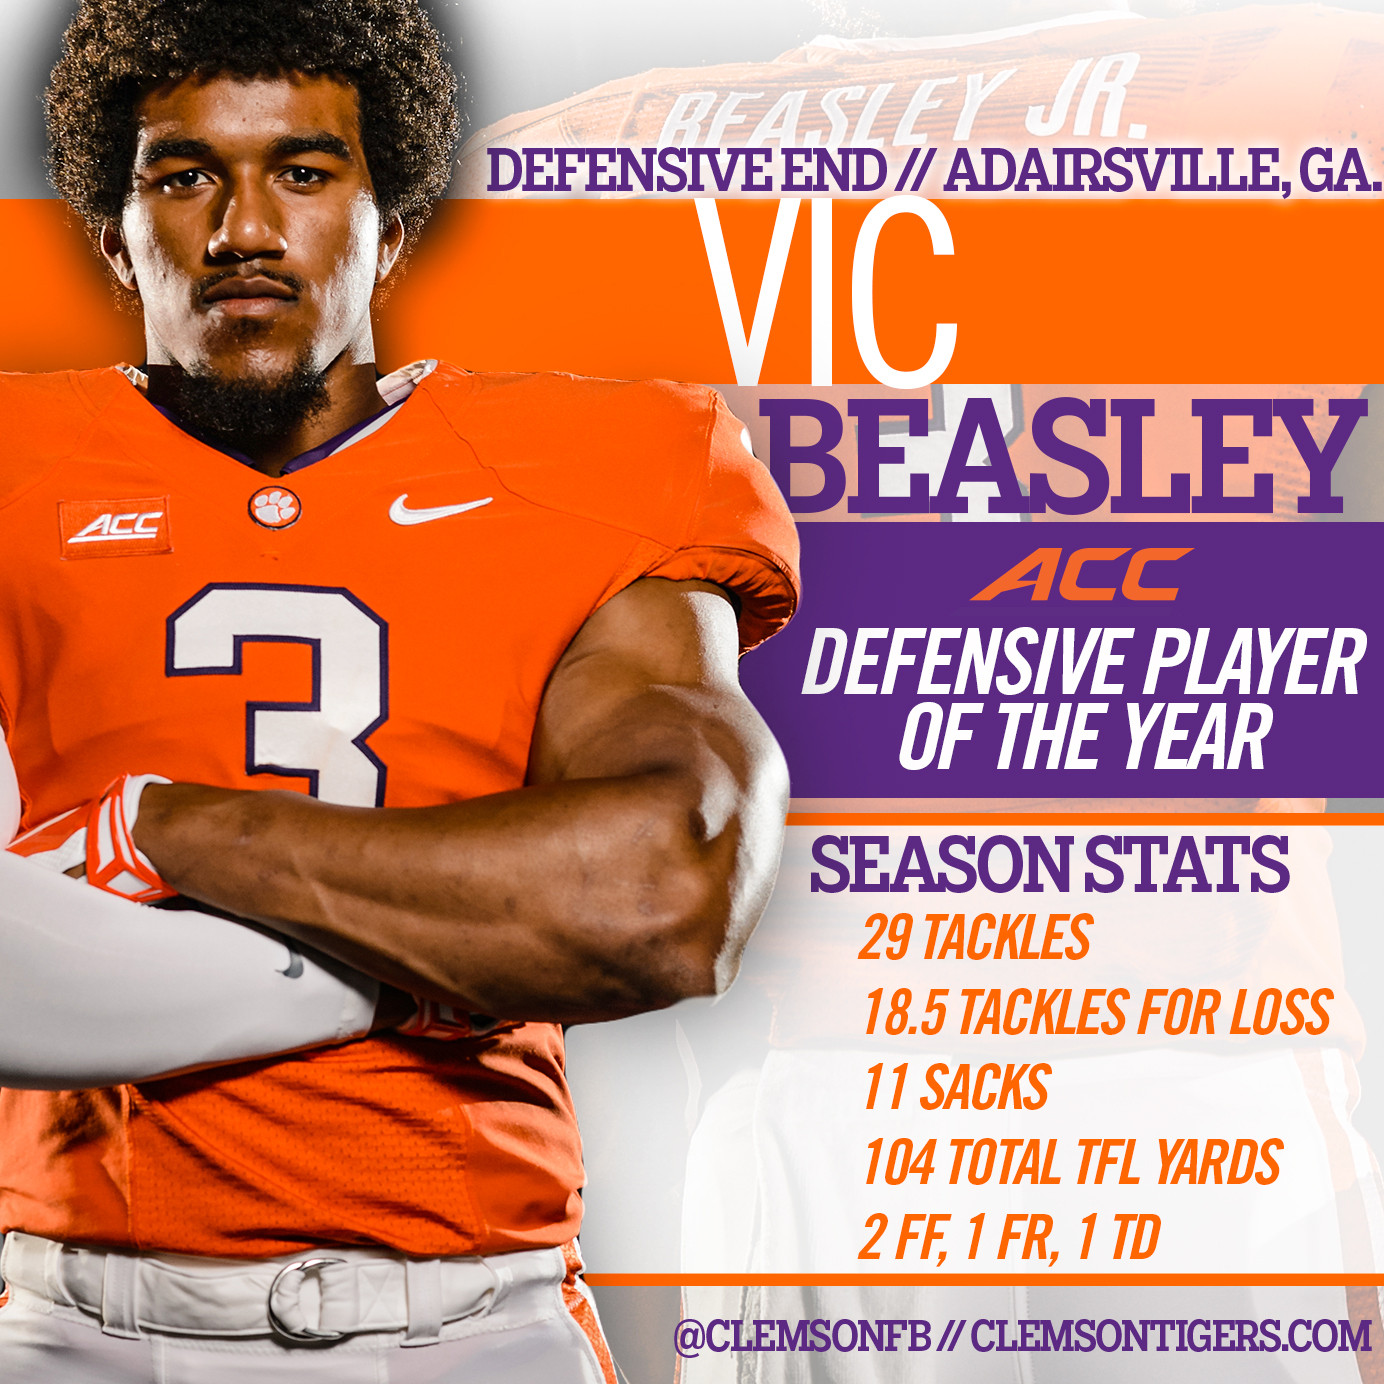 Vic Beasley ACC Defensive Player of the Year